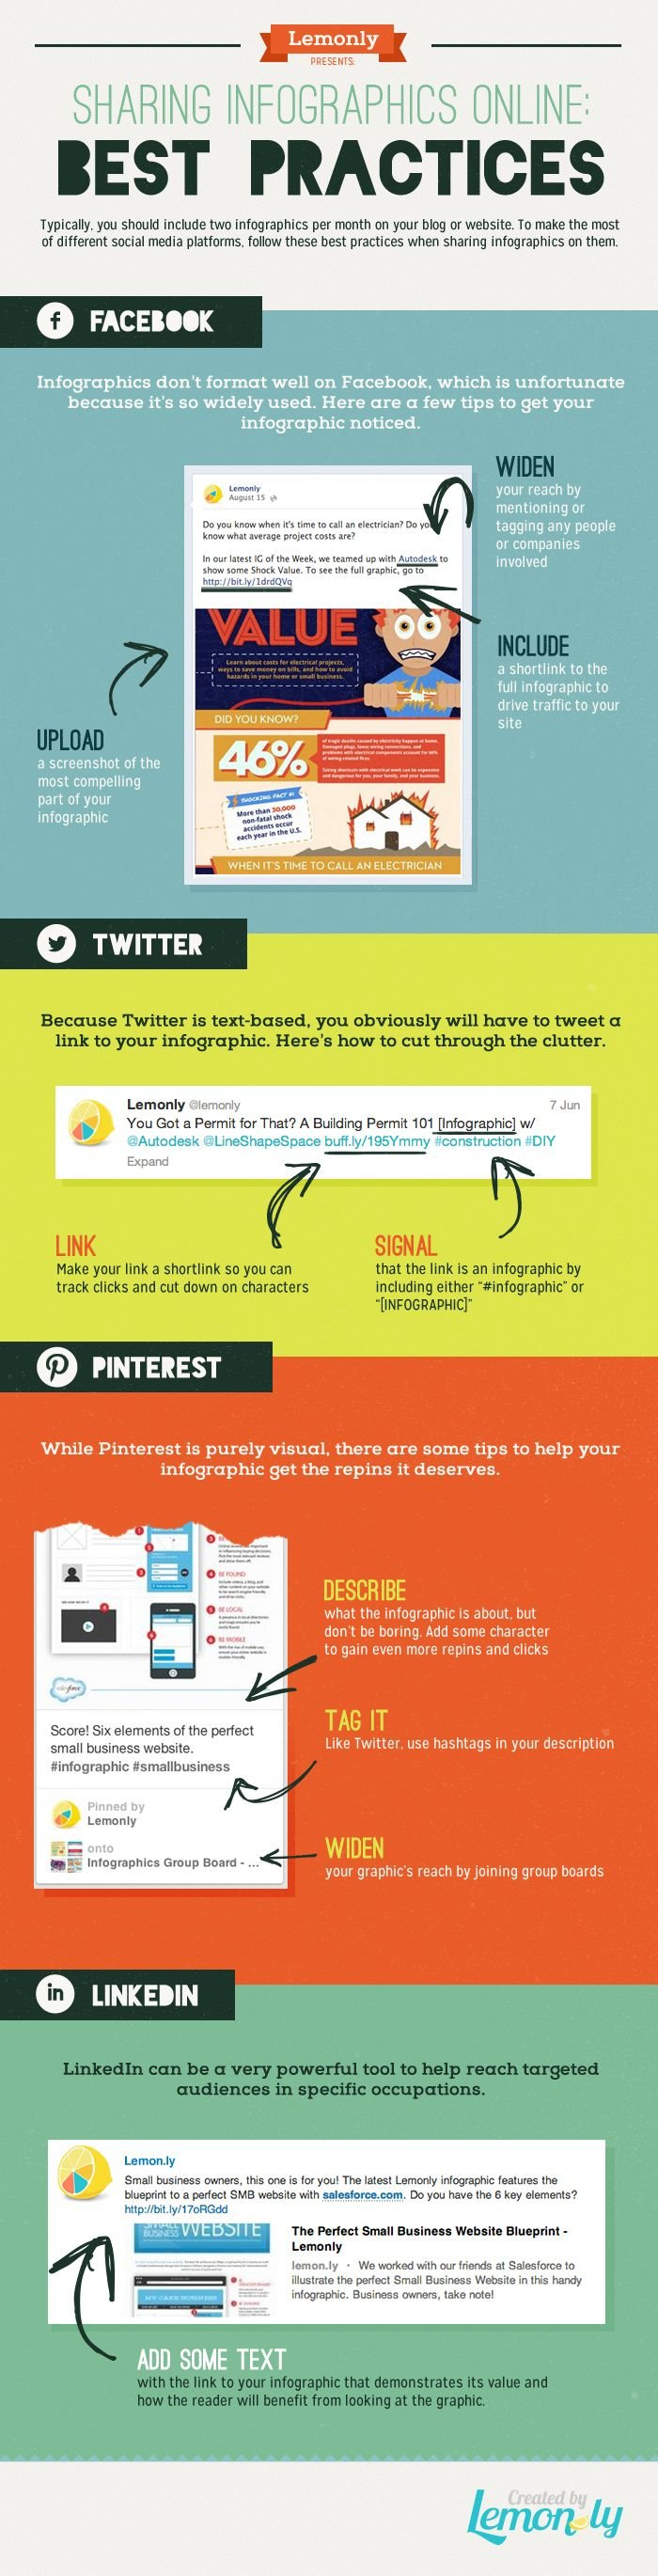 Best practices for sharing infographics online #infographic